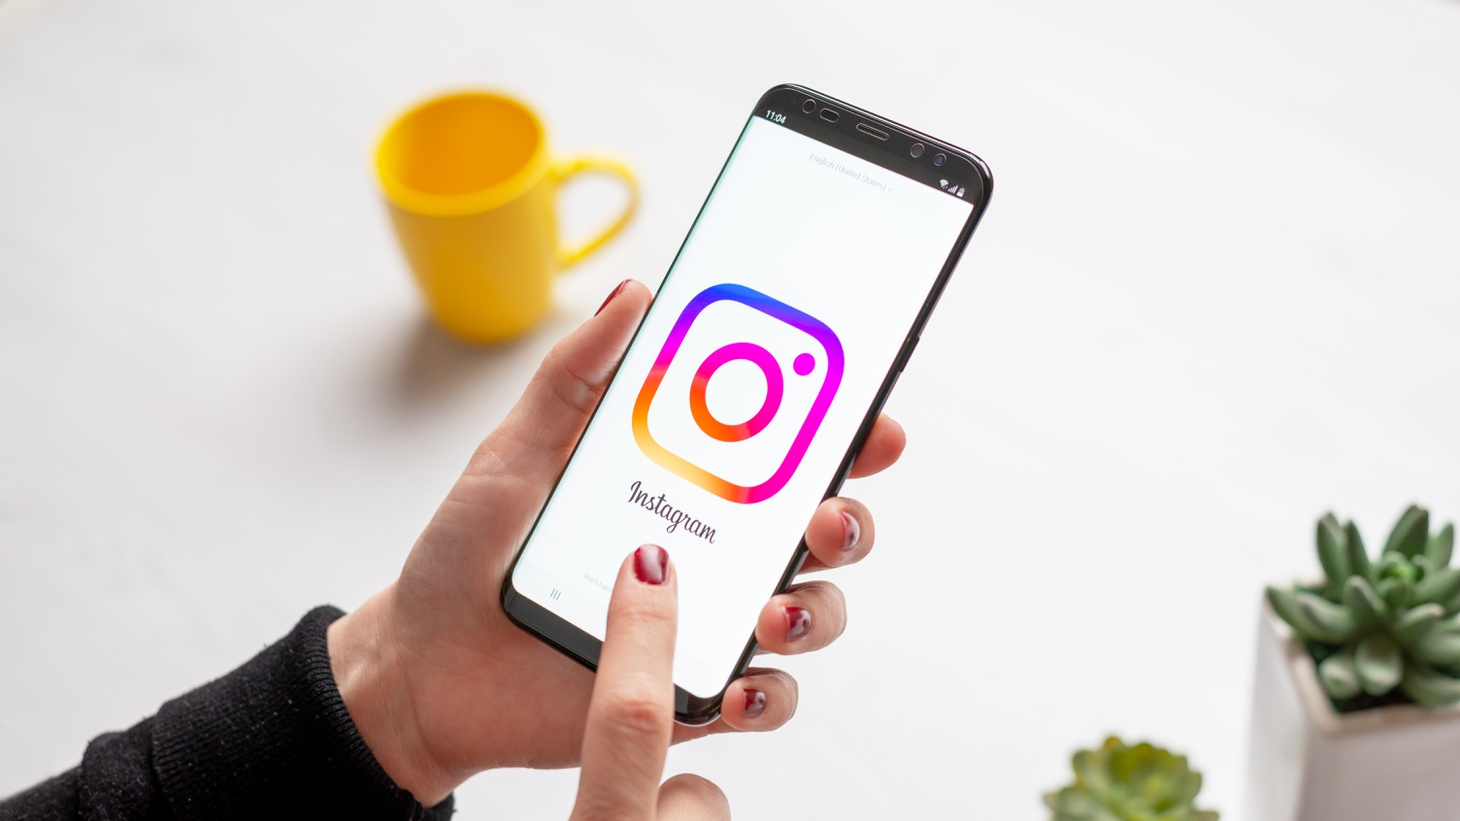 Facebook has done years of research into Instagram, and found that a sizable percentage of its teen users are suffering from body image and anxiety issues that have been exacerbated by the photo platform. But despite internal knowledge of the situation, there's little effort to rectify the issue.